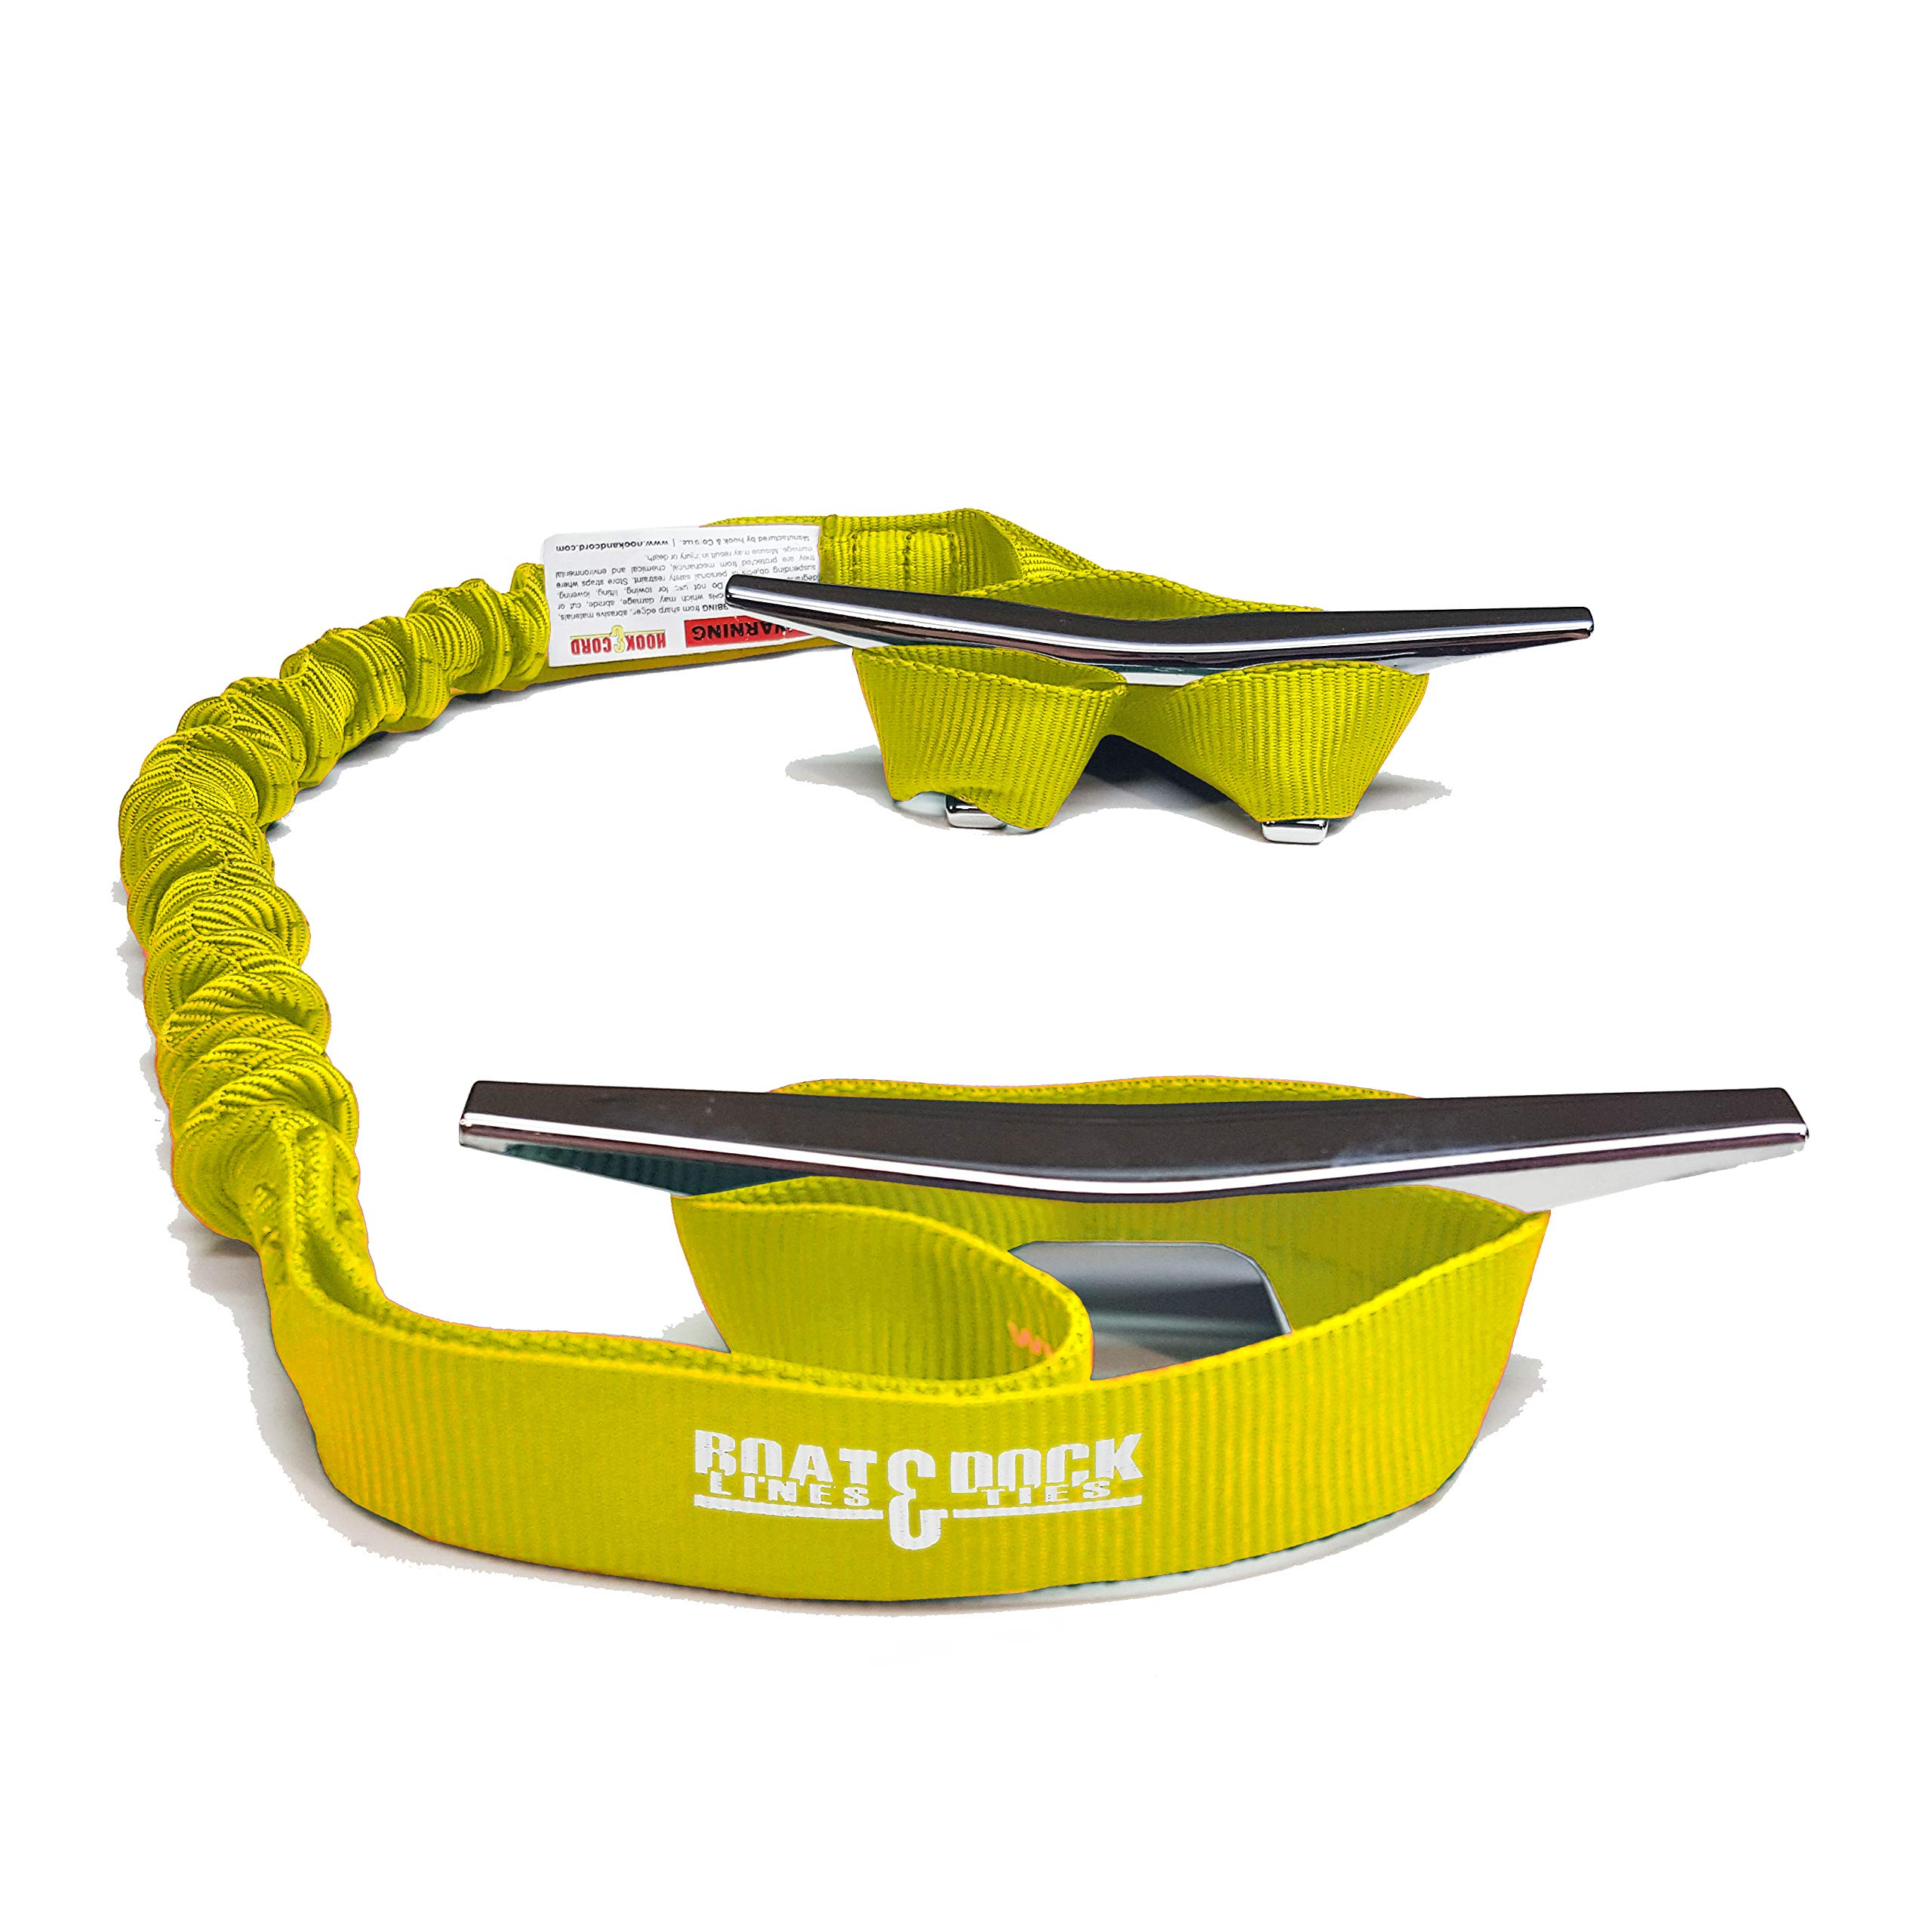 Hook & Cord Boat Dock Tie Bungee, Made in USA, 2 Loop Pack of 2, 30 inch Long (Yellow, 30 Inch)